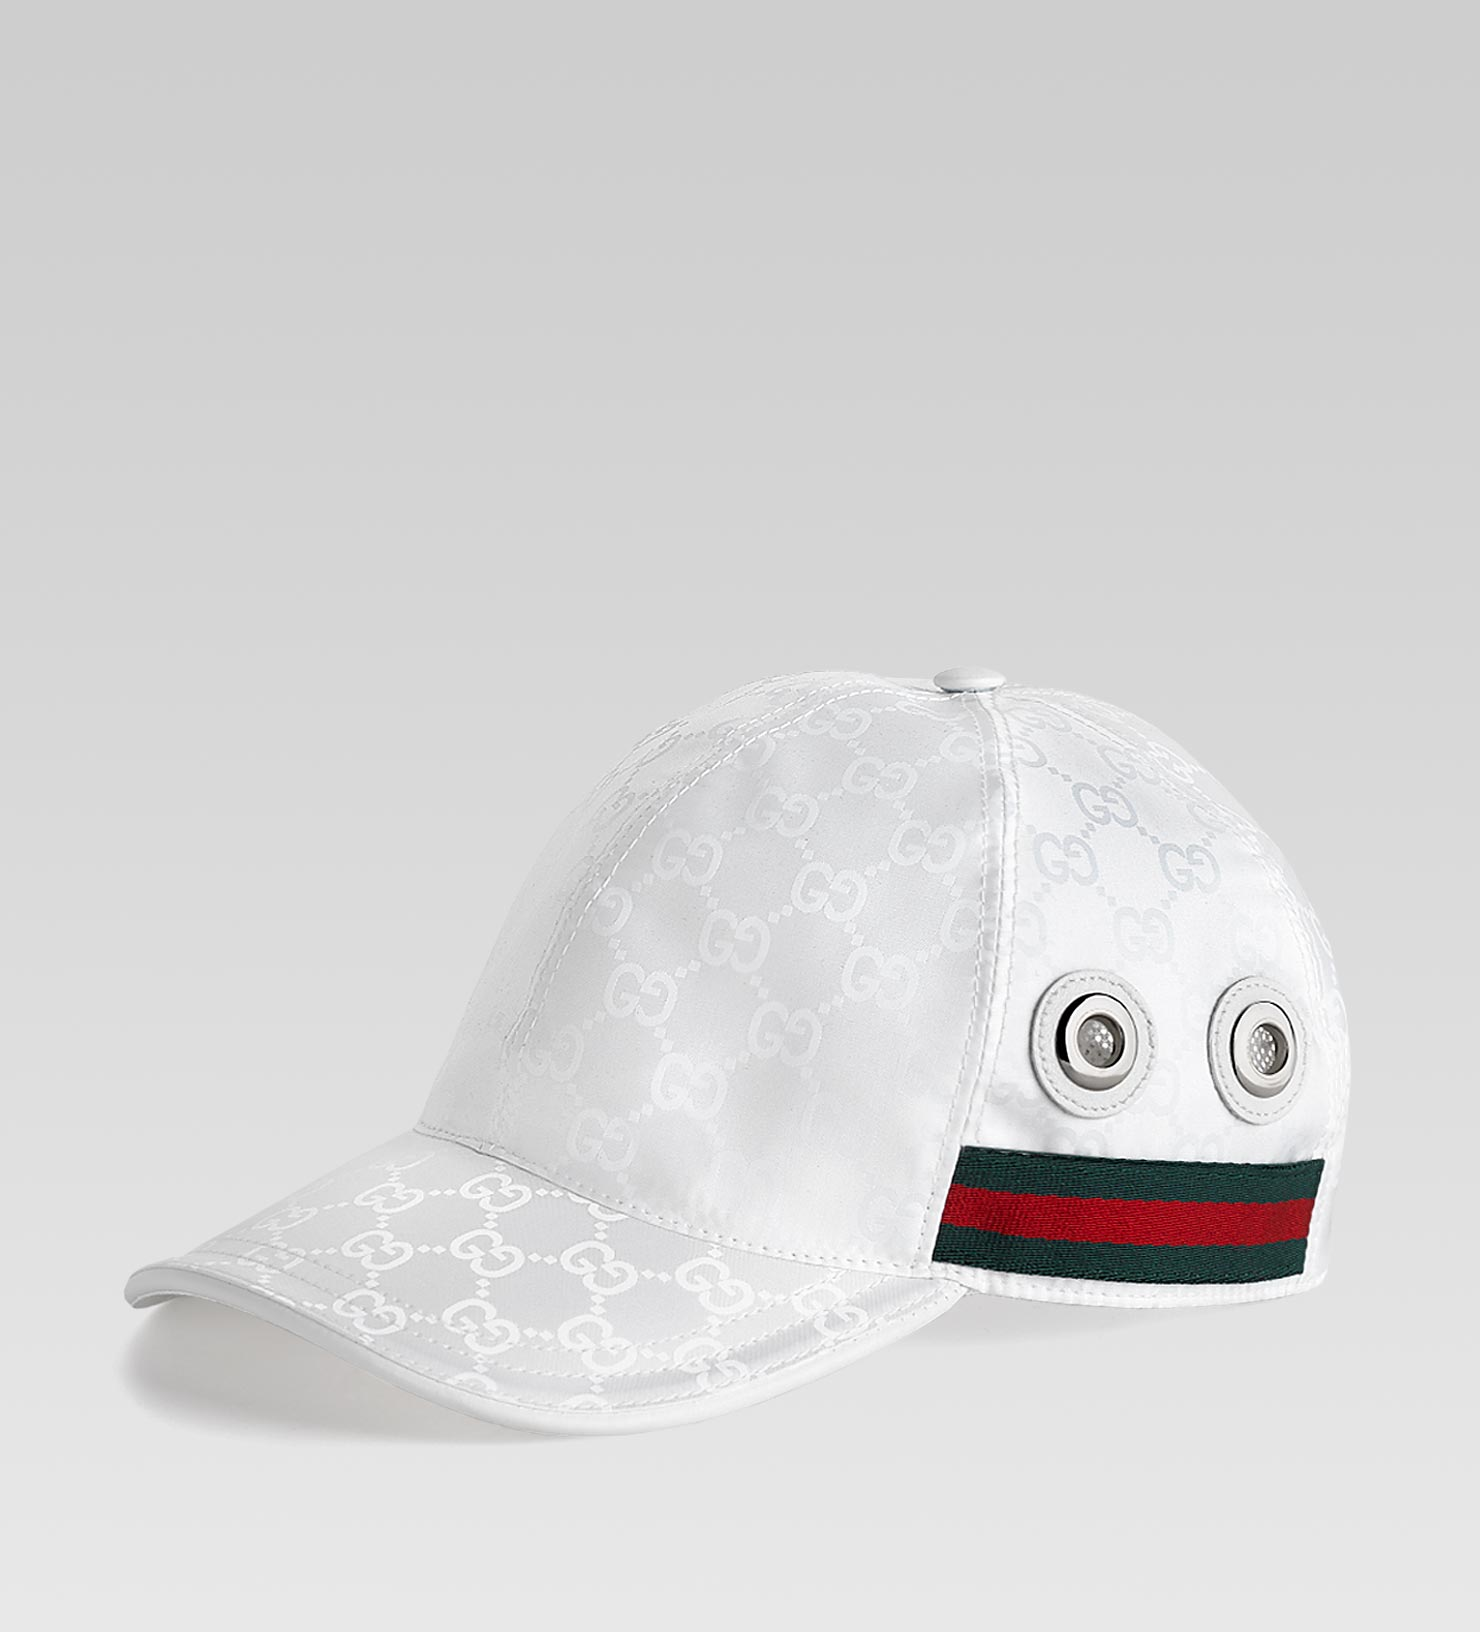 gucci baseball hat with grommets and adjustable